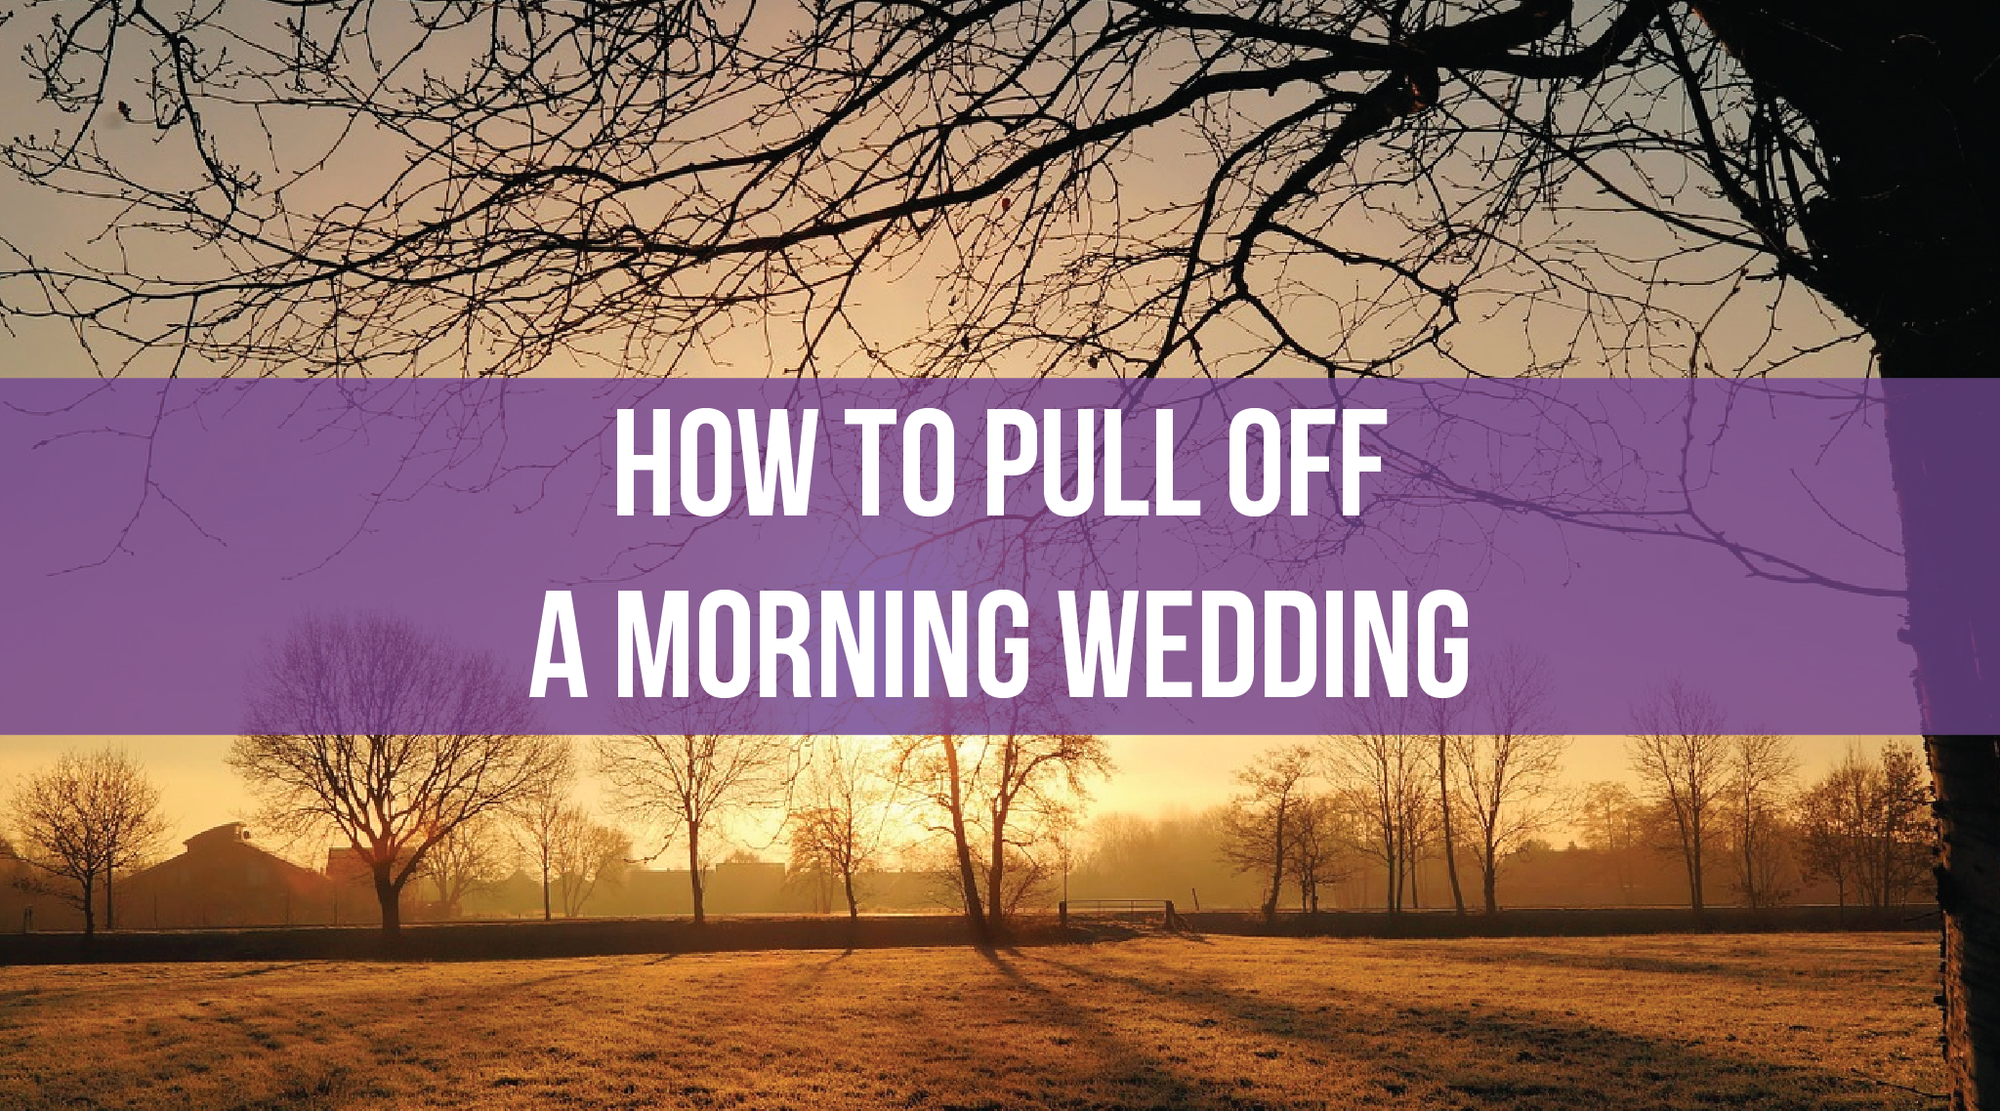 How to Pull Off a Morning Wedding